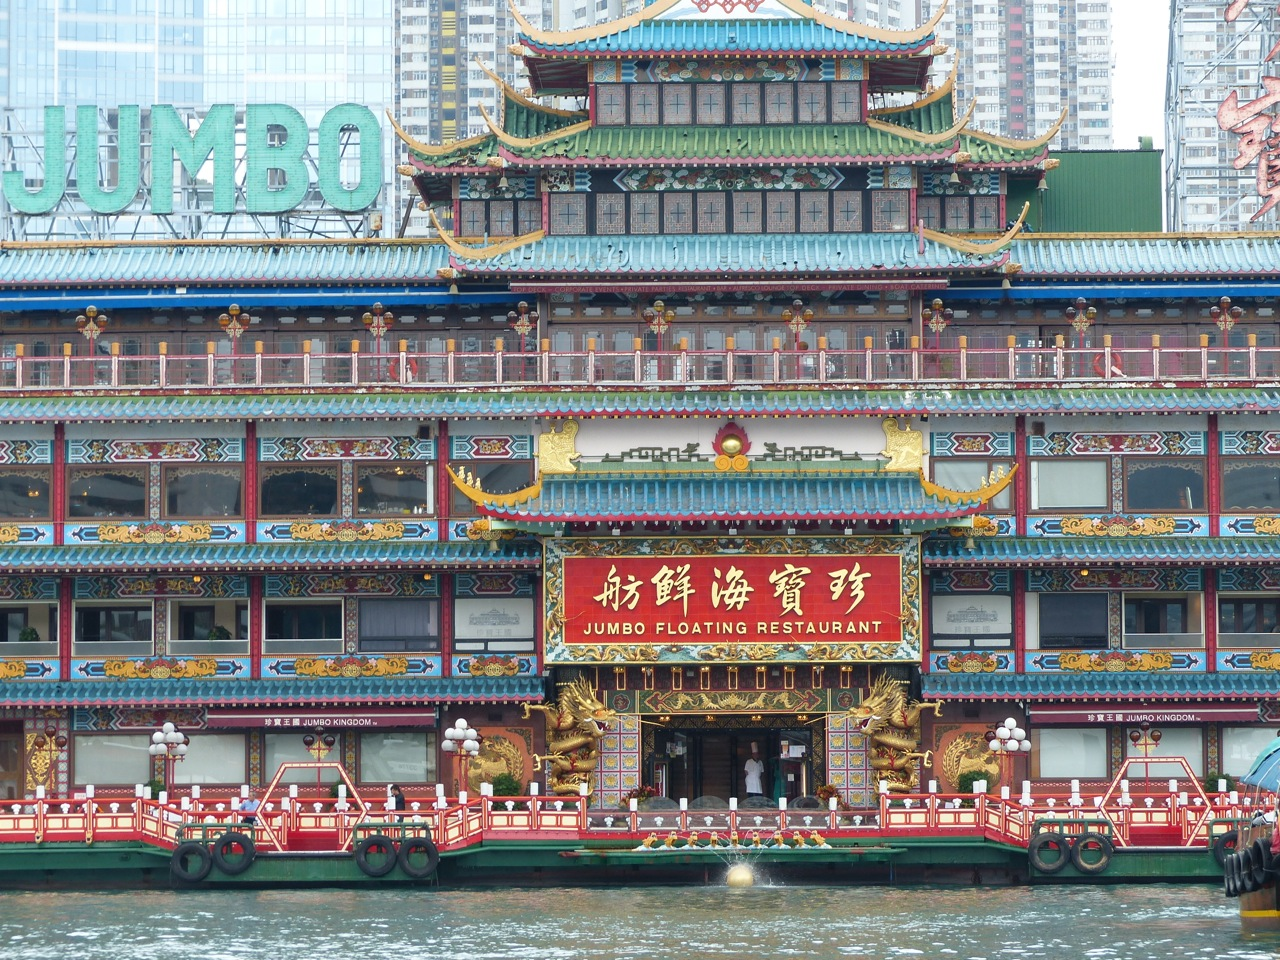 Hong Kong floating restaruant.jpg